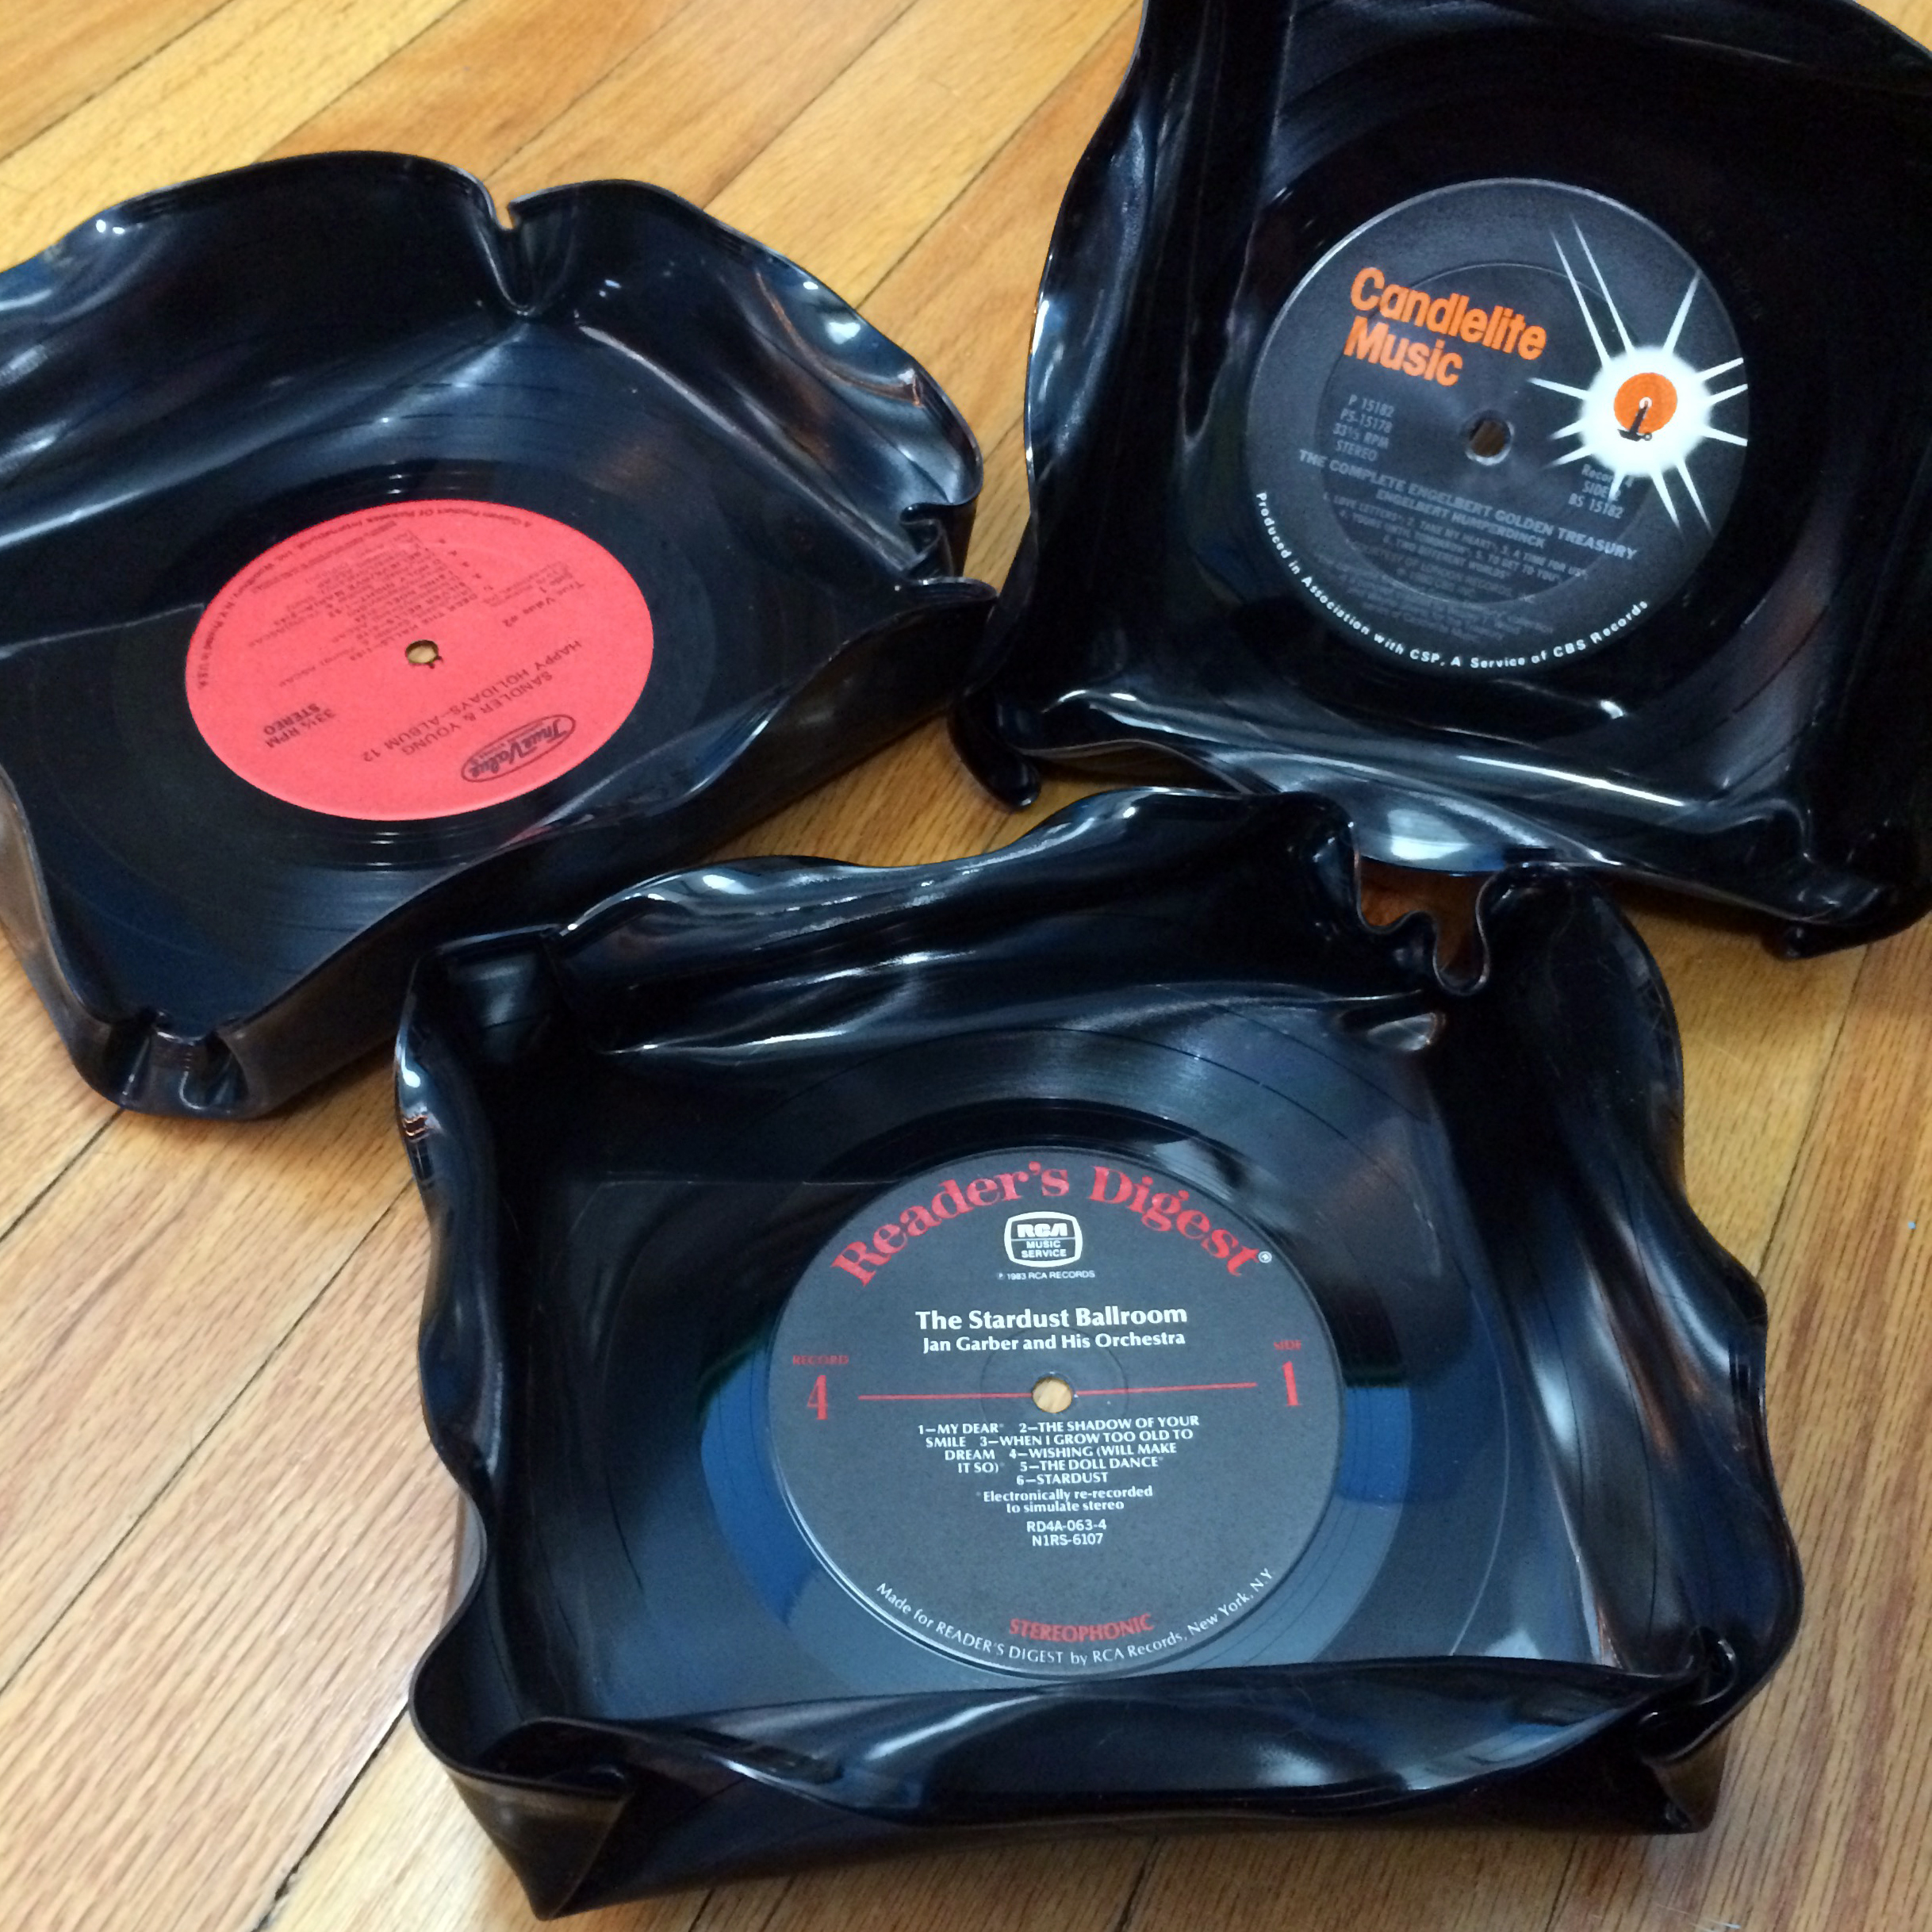 Square LP record catch-all decorative bowls.